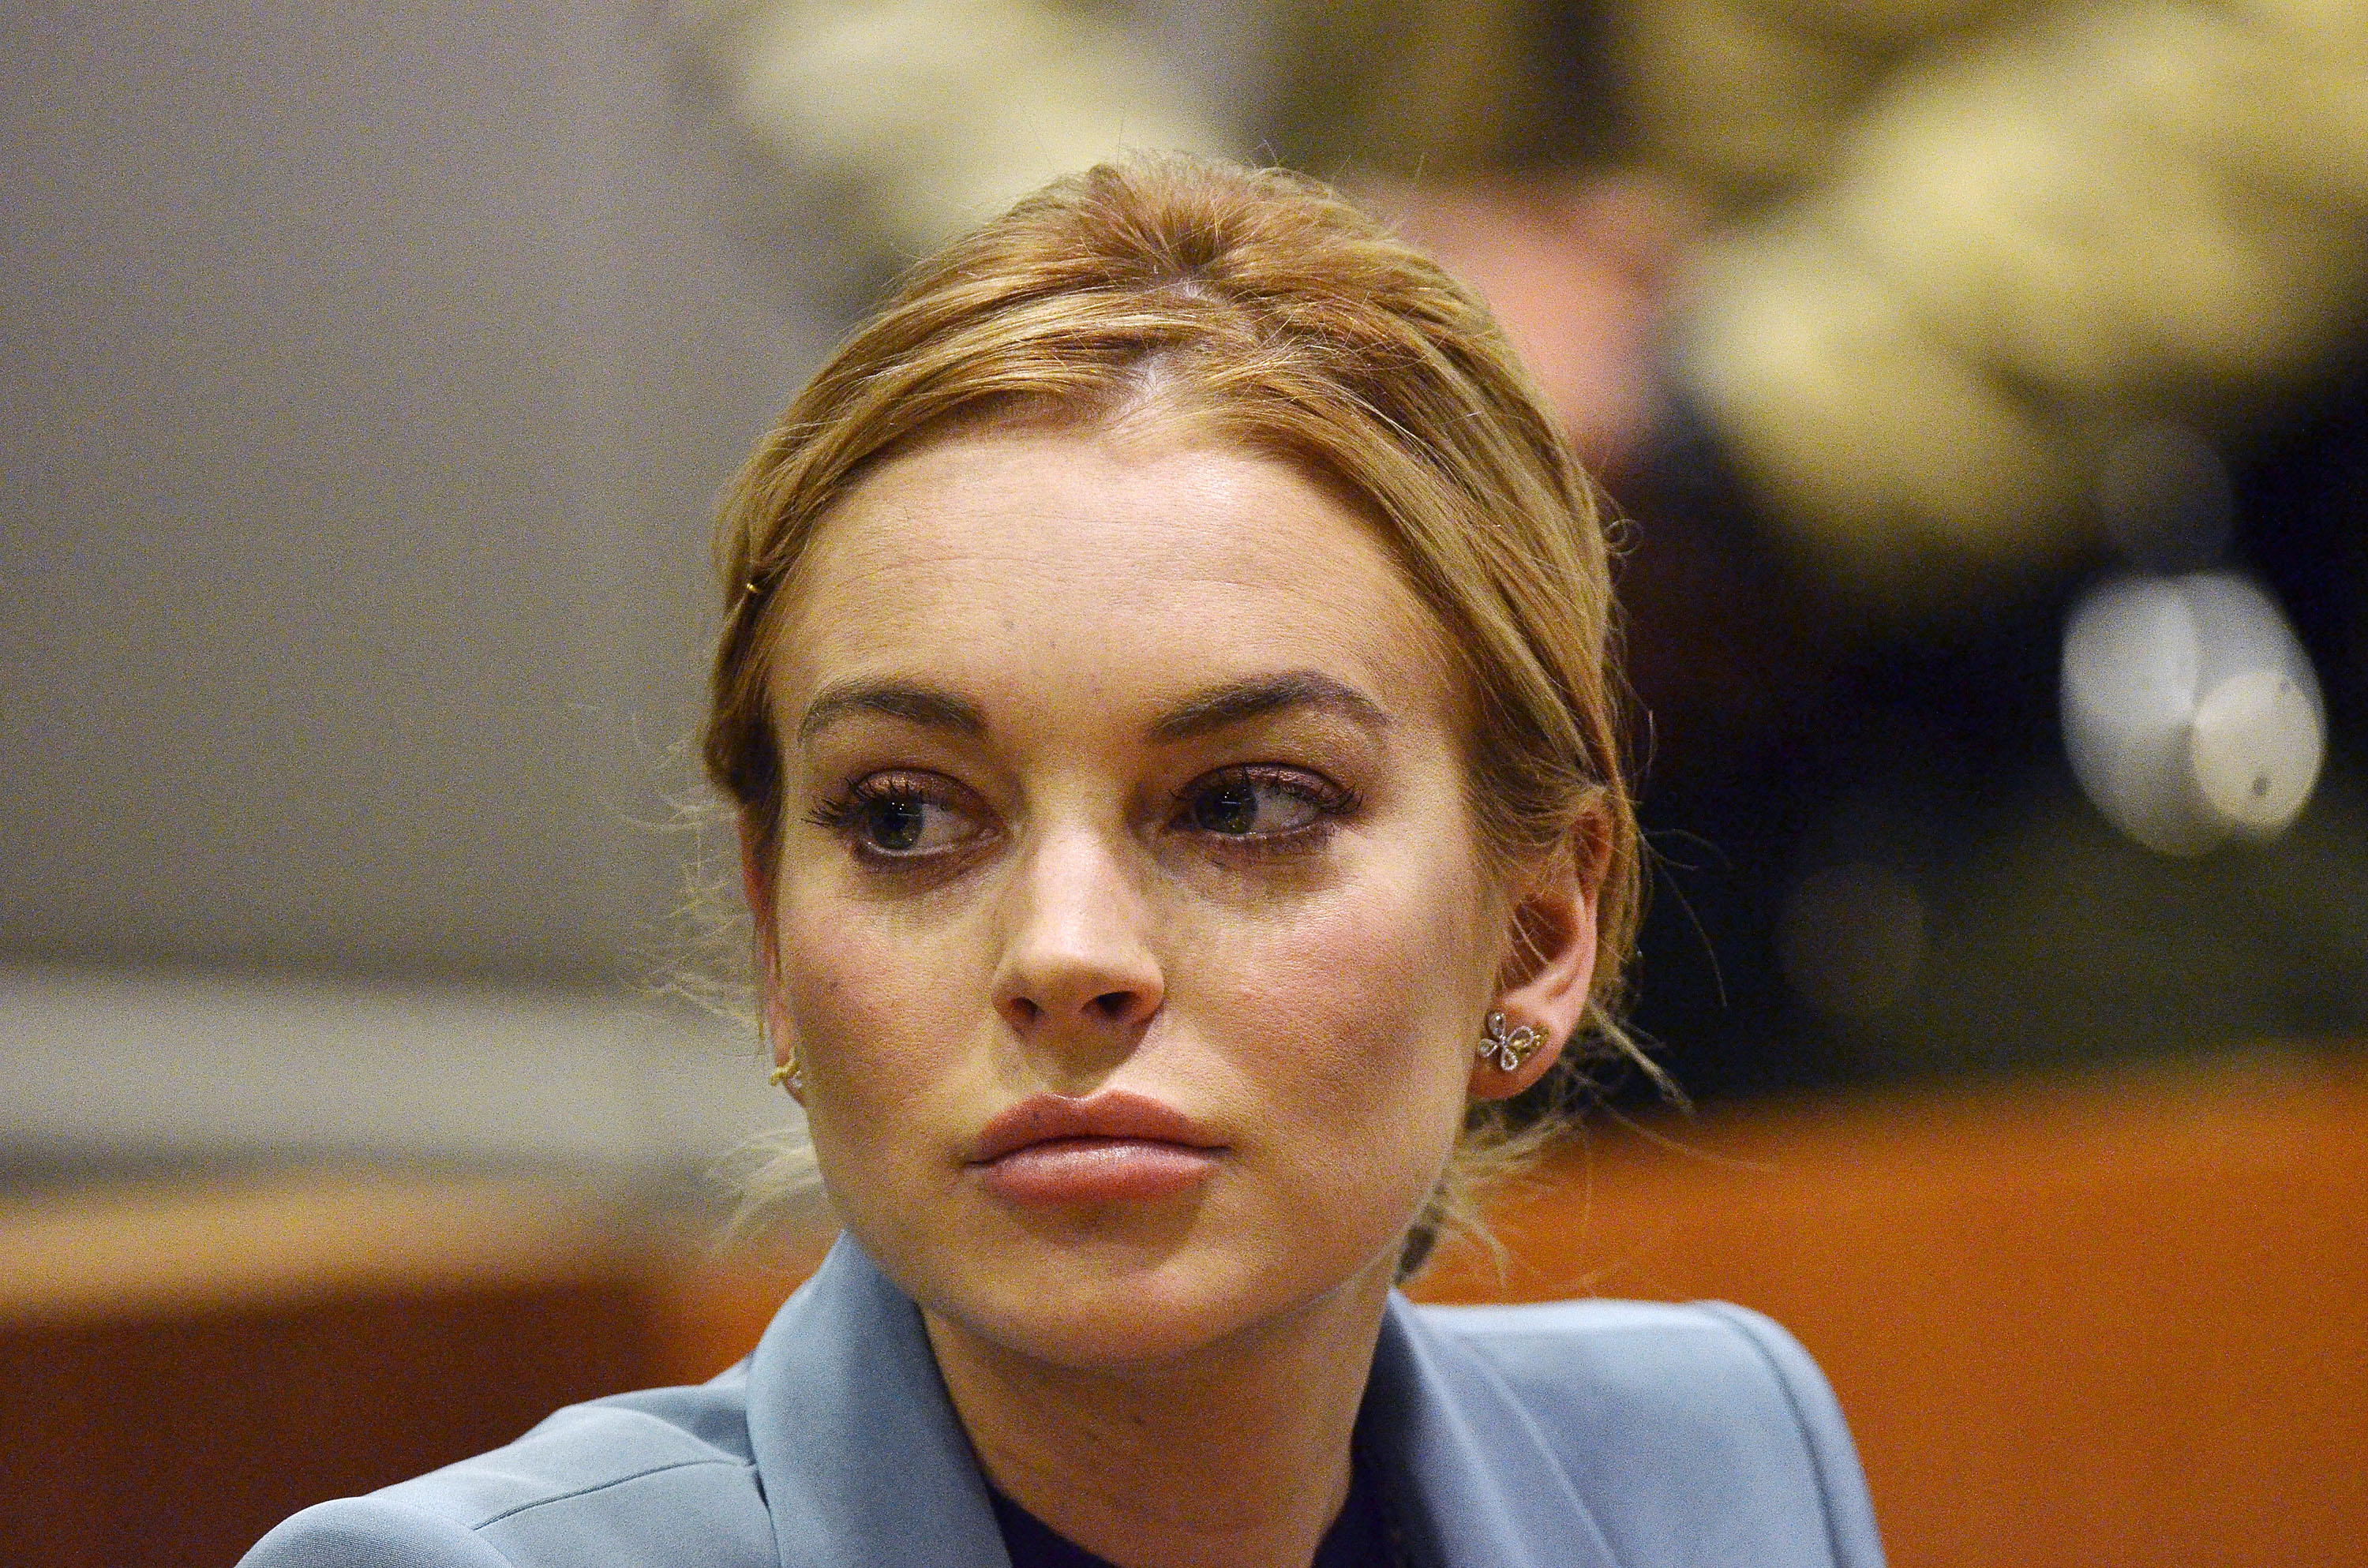 LOS ANGELES, CA - MARCH 29:  Lindsay Lohan attends her probation hearing with attorney Shawn Chapman Holley (not pictured) at the Airport Courthouse on March 29, 2012 in Los Angeles, California. Judge Stephanie Sautner ended Lohan's formal probation after concluding that she has completed the terms of her sentence for her 2007 DUI conviction and probation violations.  Lohan is now on informal probation until May 2014 for her 2011 Venice, California jewelry theft conviction.  (Photo Joe Klamer-Pool/Getty Images)